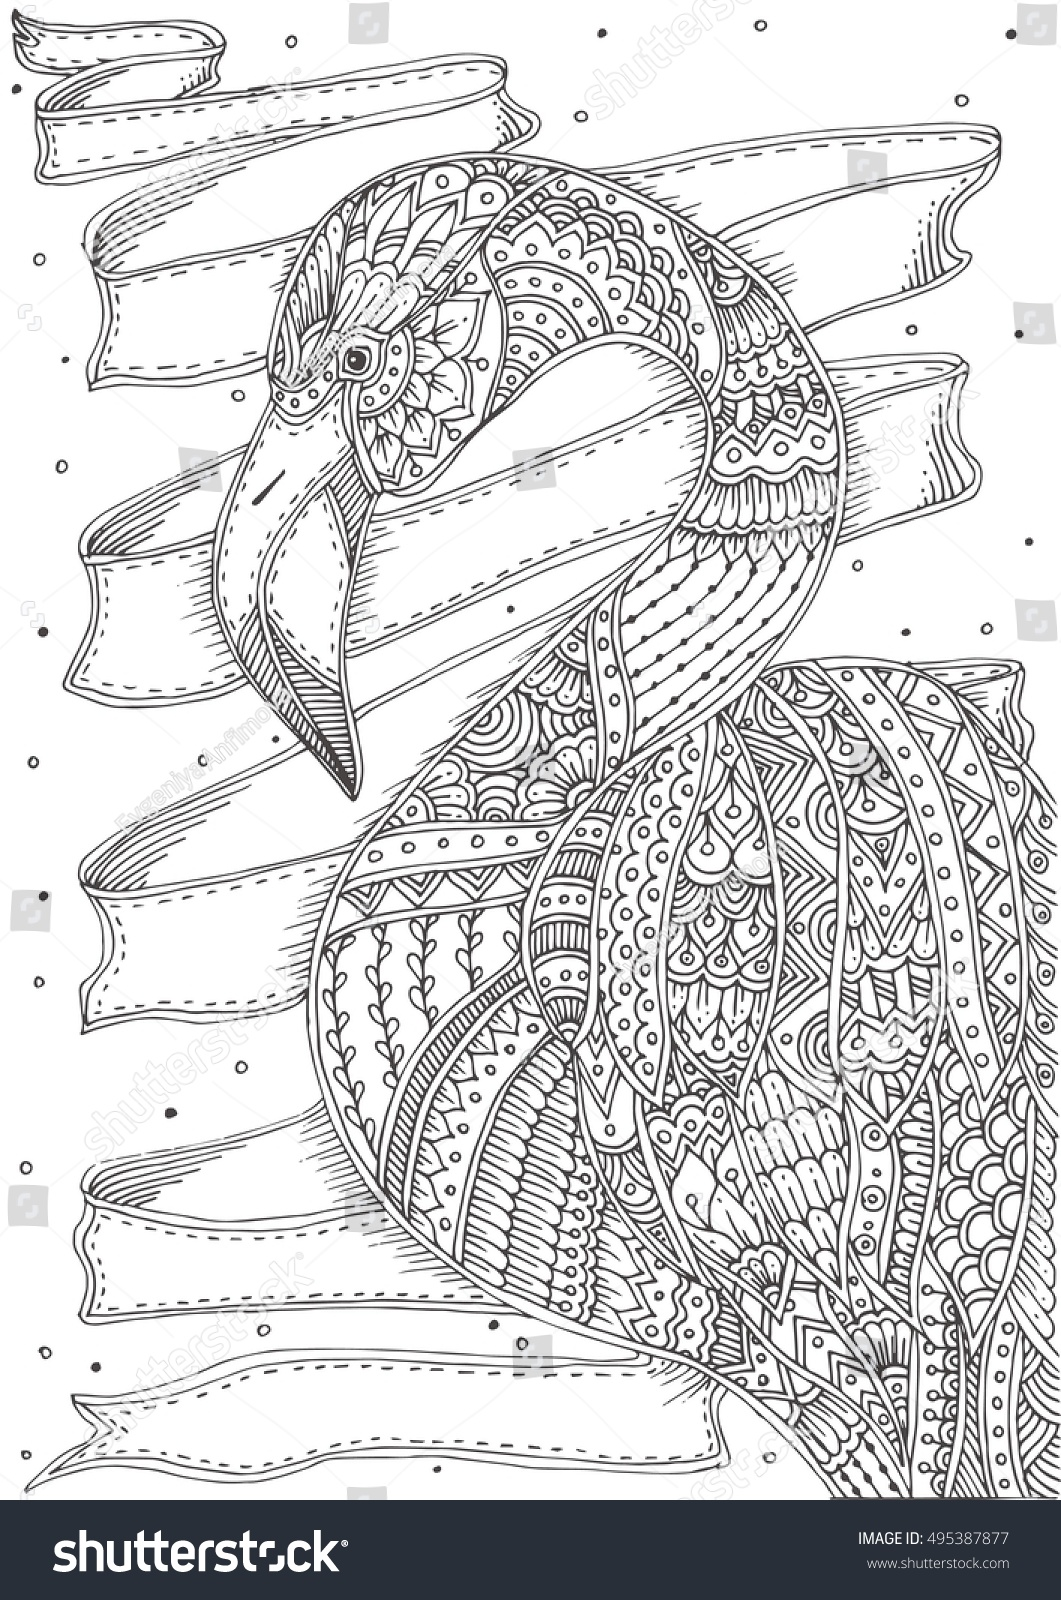 Handdrawn Flamingo Ethnic Doodle Pattern Coloring Stock